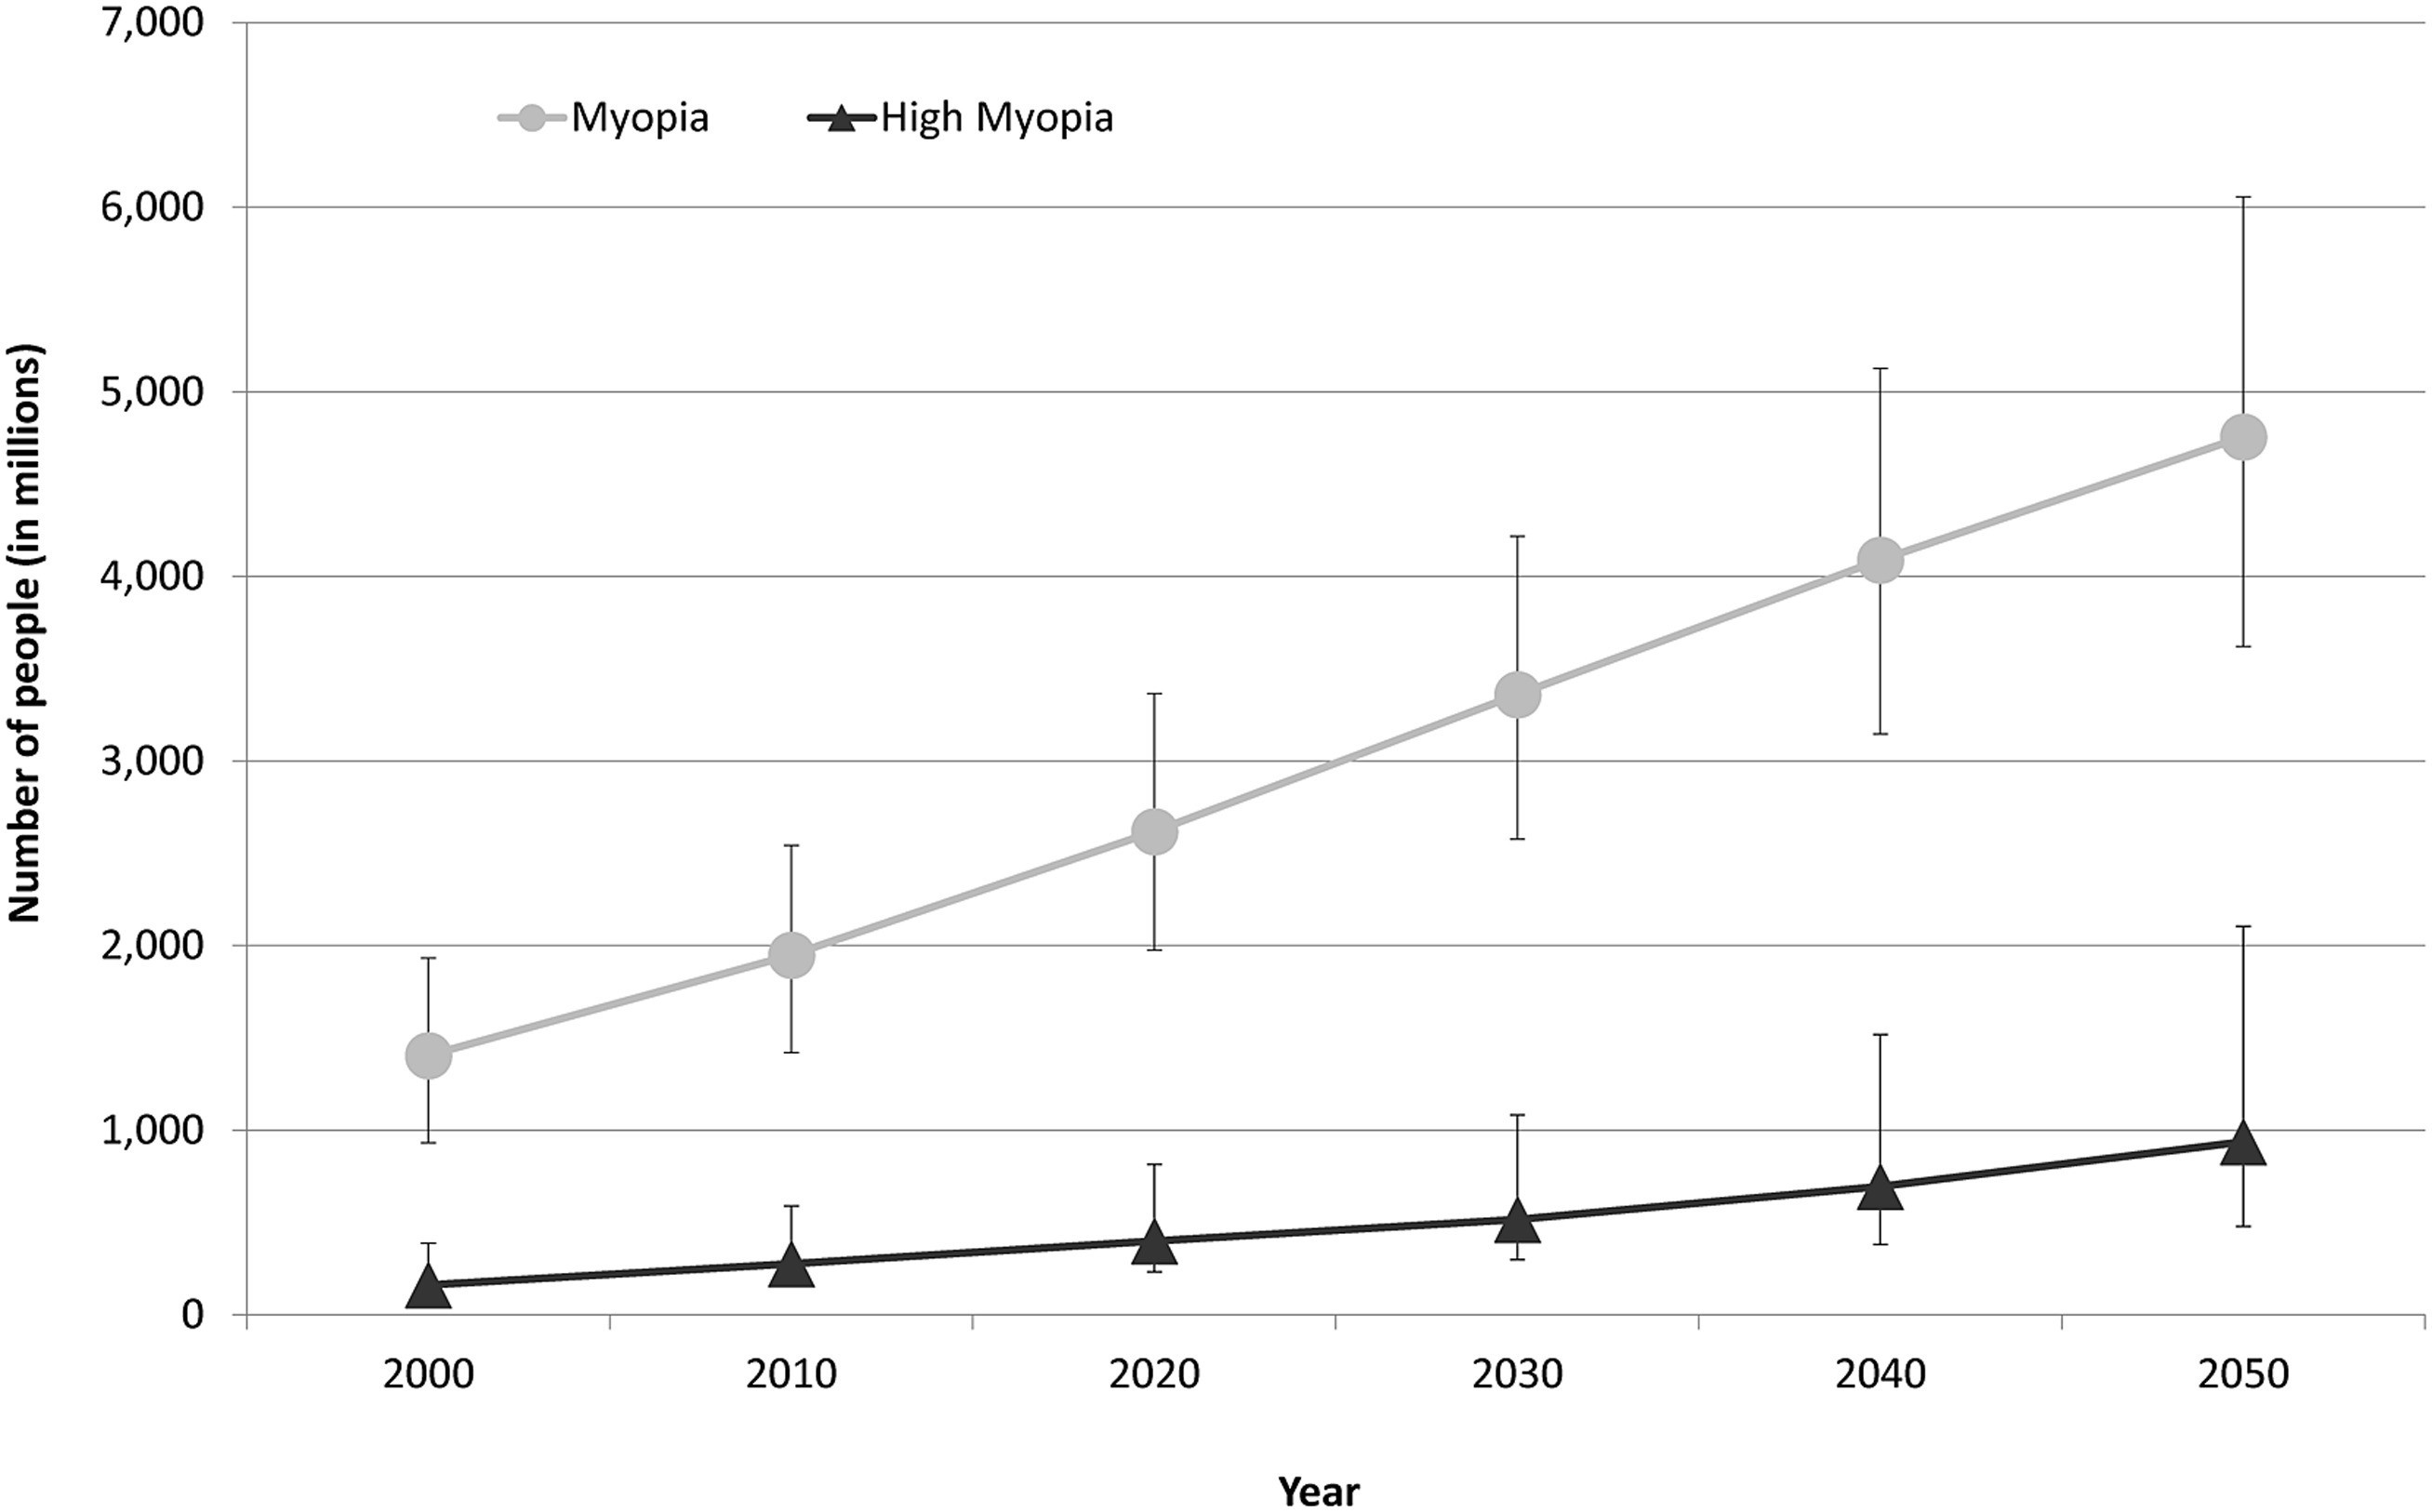 Graph showing the number of people estimated to have myopia and high myopia for each decade from 2000 through 2050. Error bars represent the 95% confidence intervals.